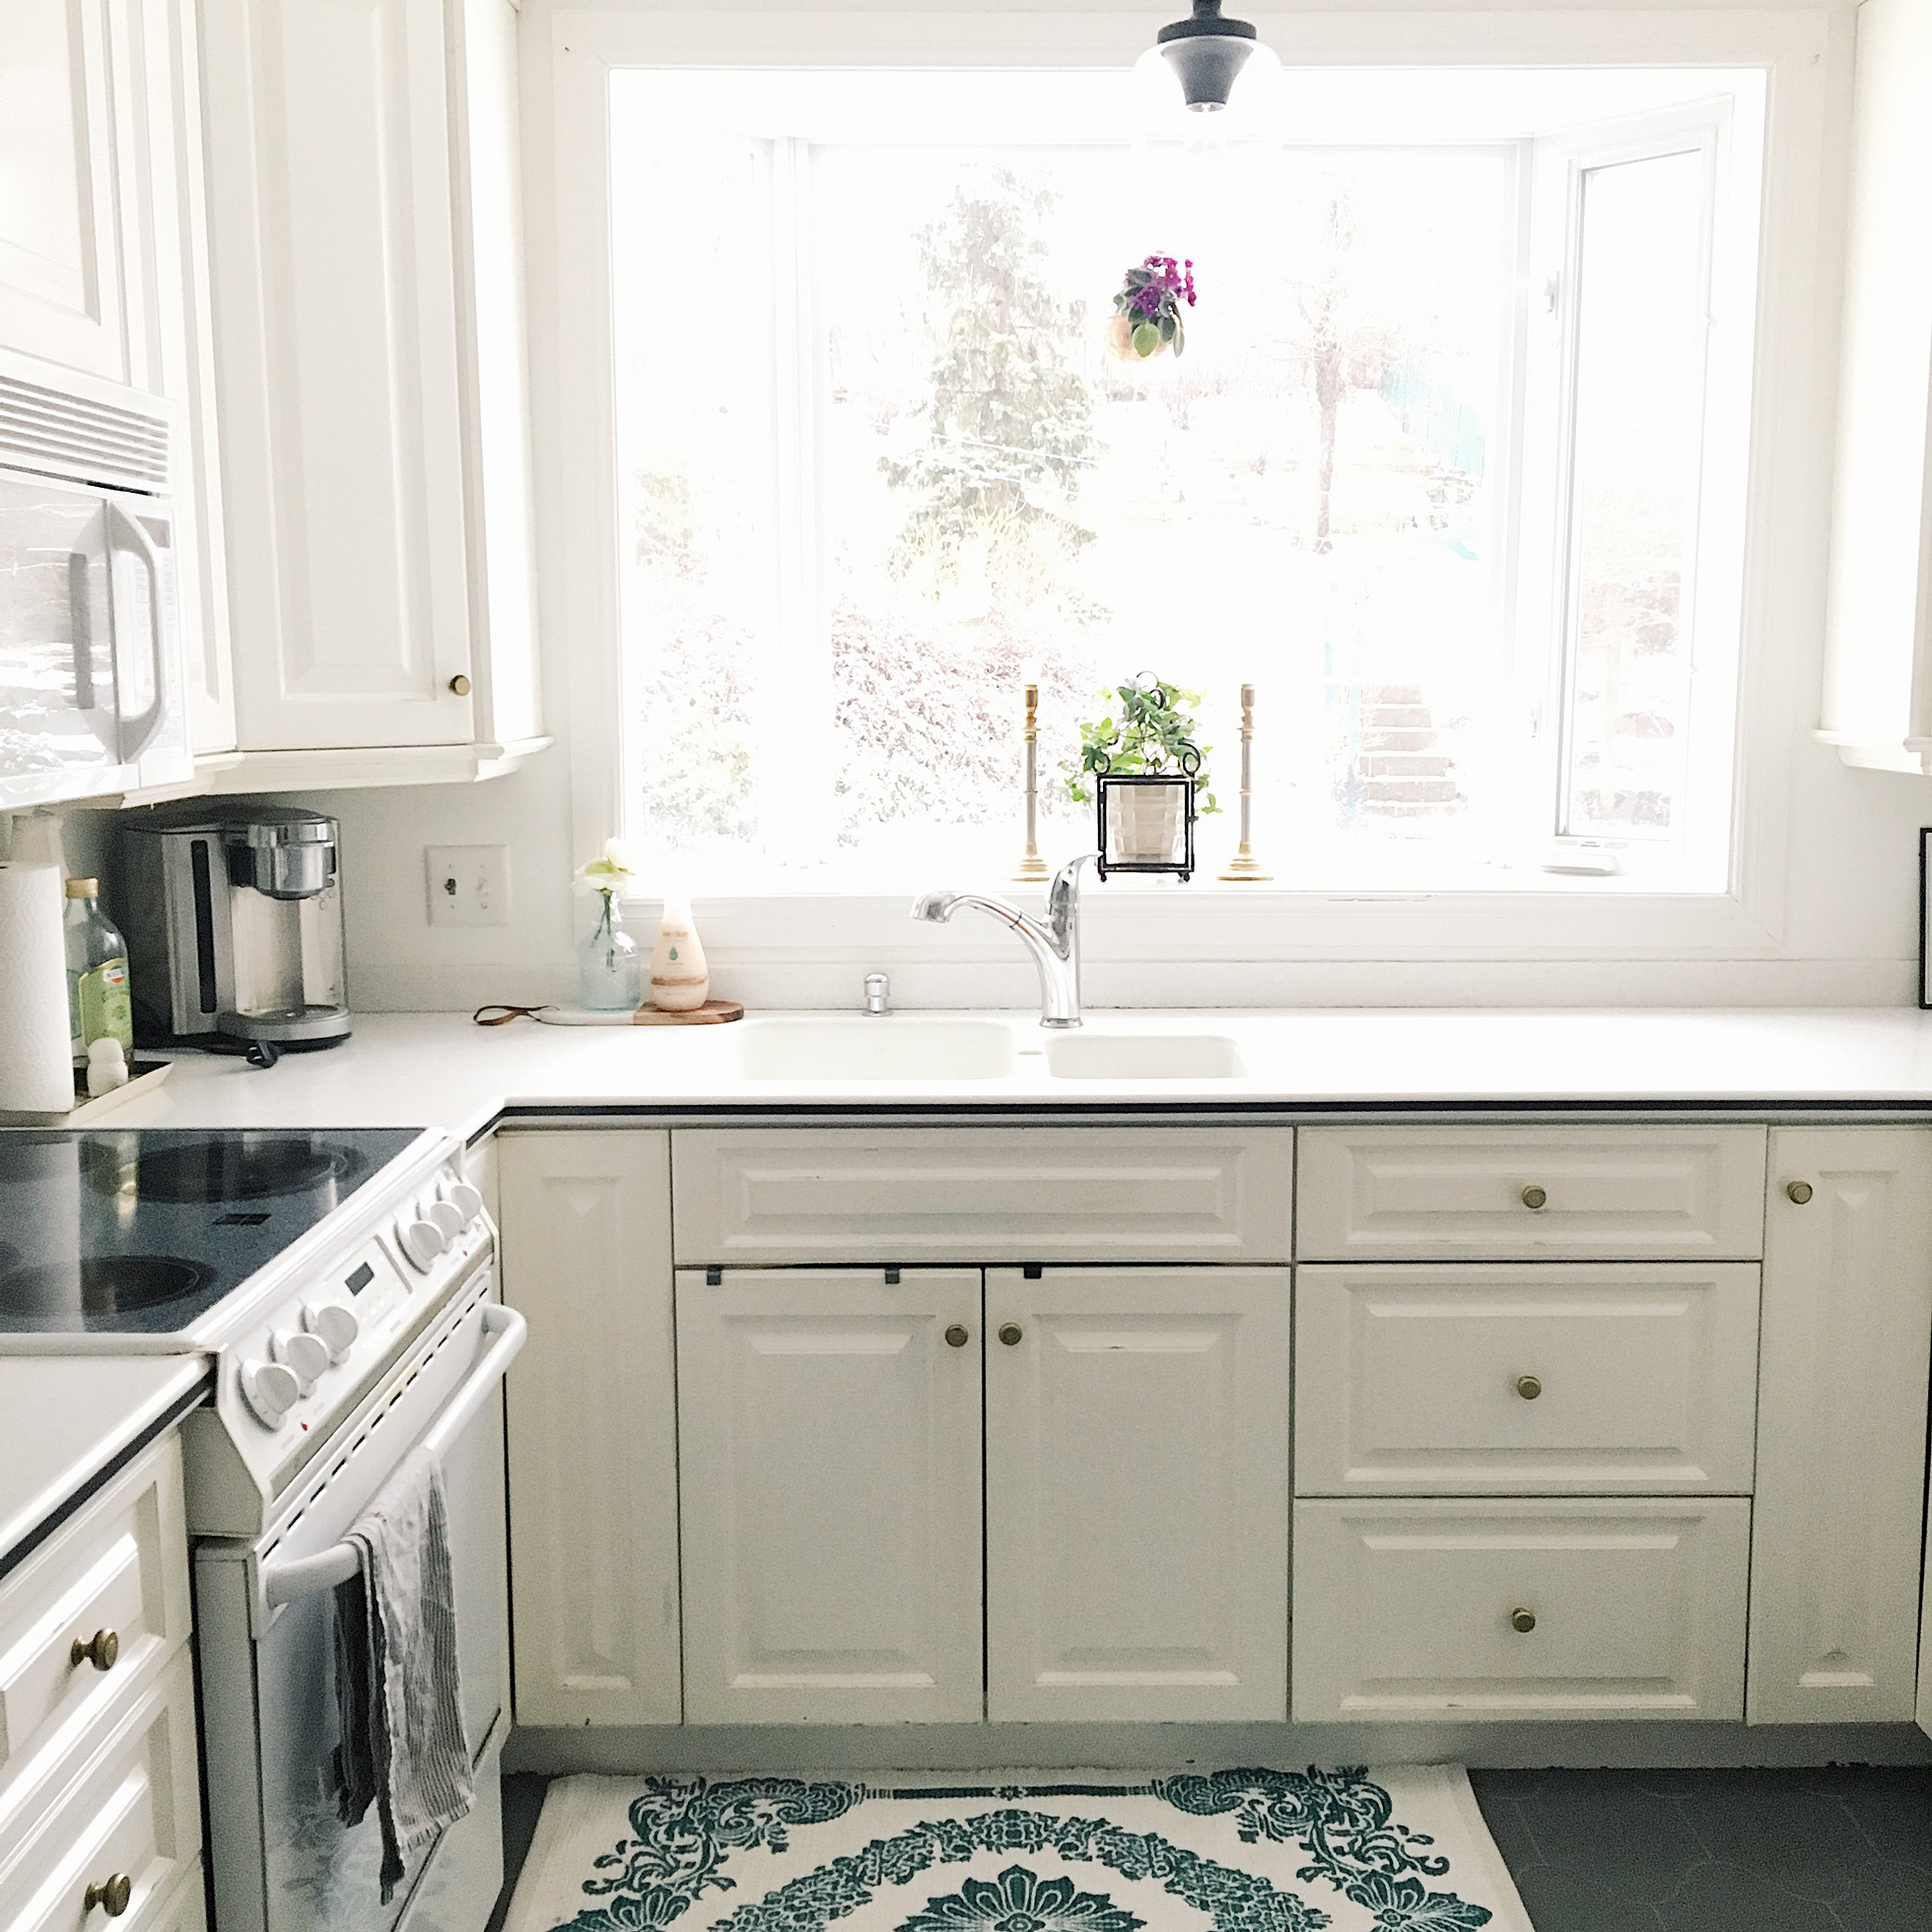 Bright white kitchen with a window over the sink